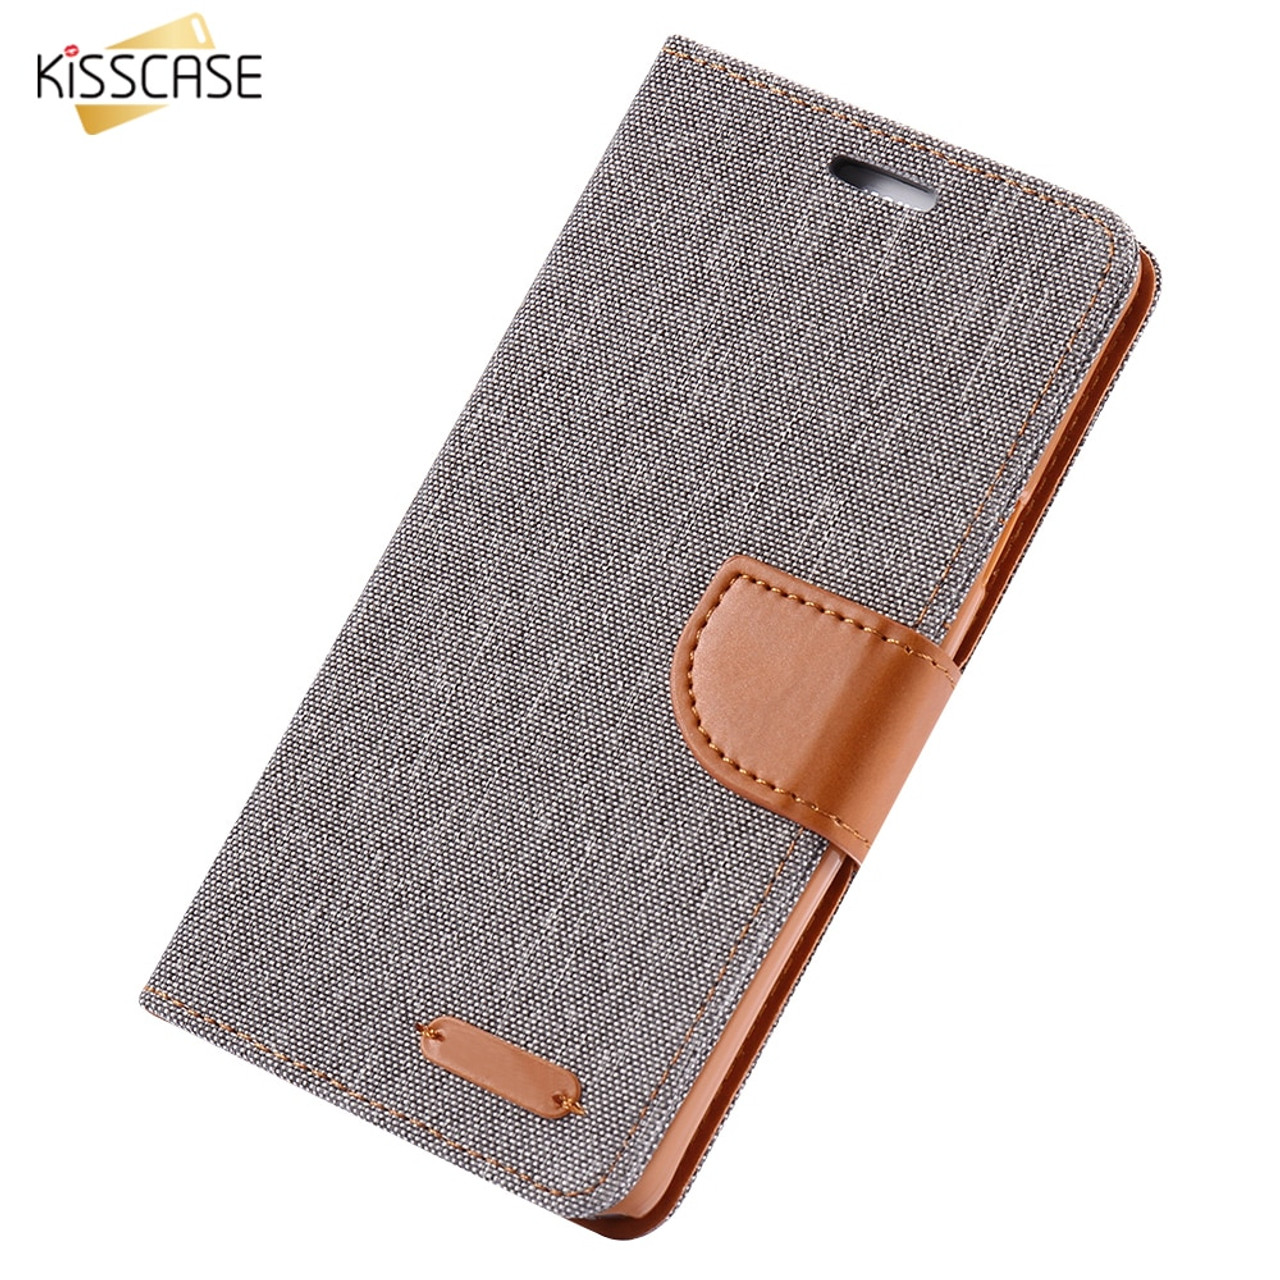 cheap for discount 72697 a594b KISSCASE Book Flip Cloth Skin Phone Case For Samsung Galaxy S8 S8 Plus S7  S7 Edge S6 Edge Note 8 Magnetic Wallet Card Slot Cover